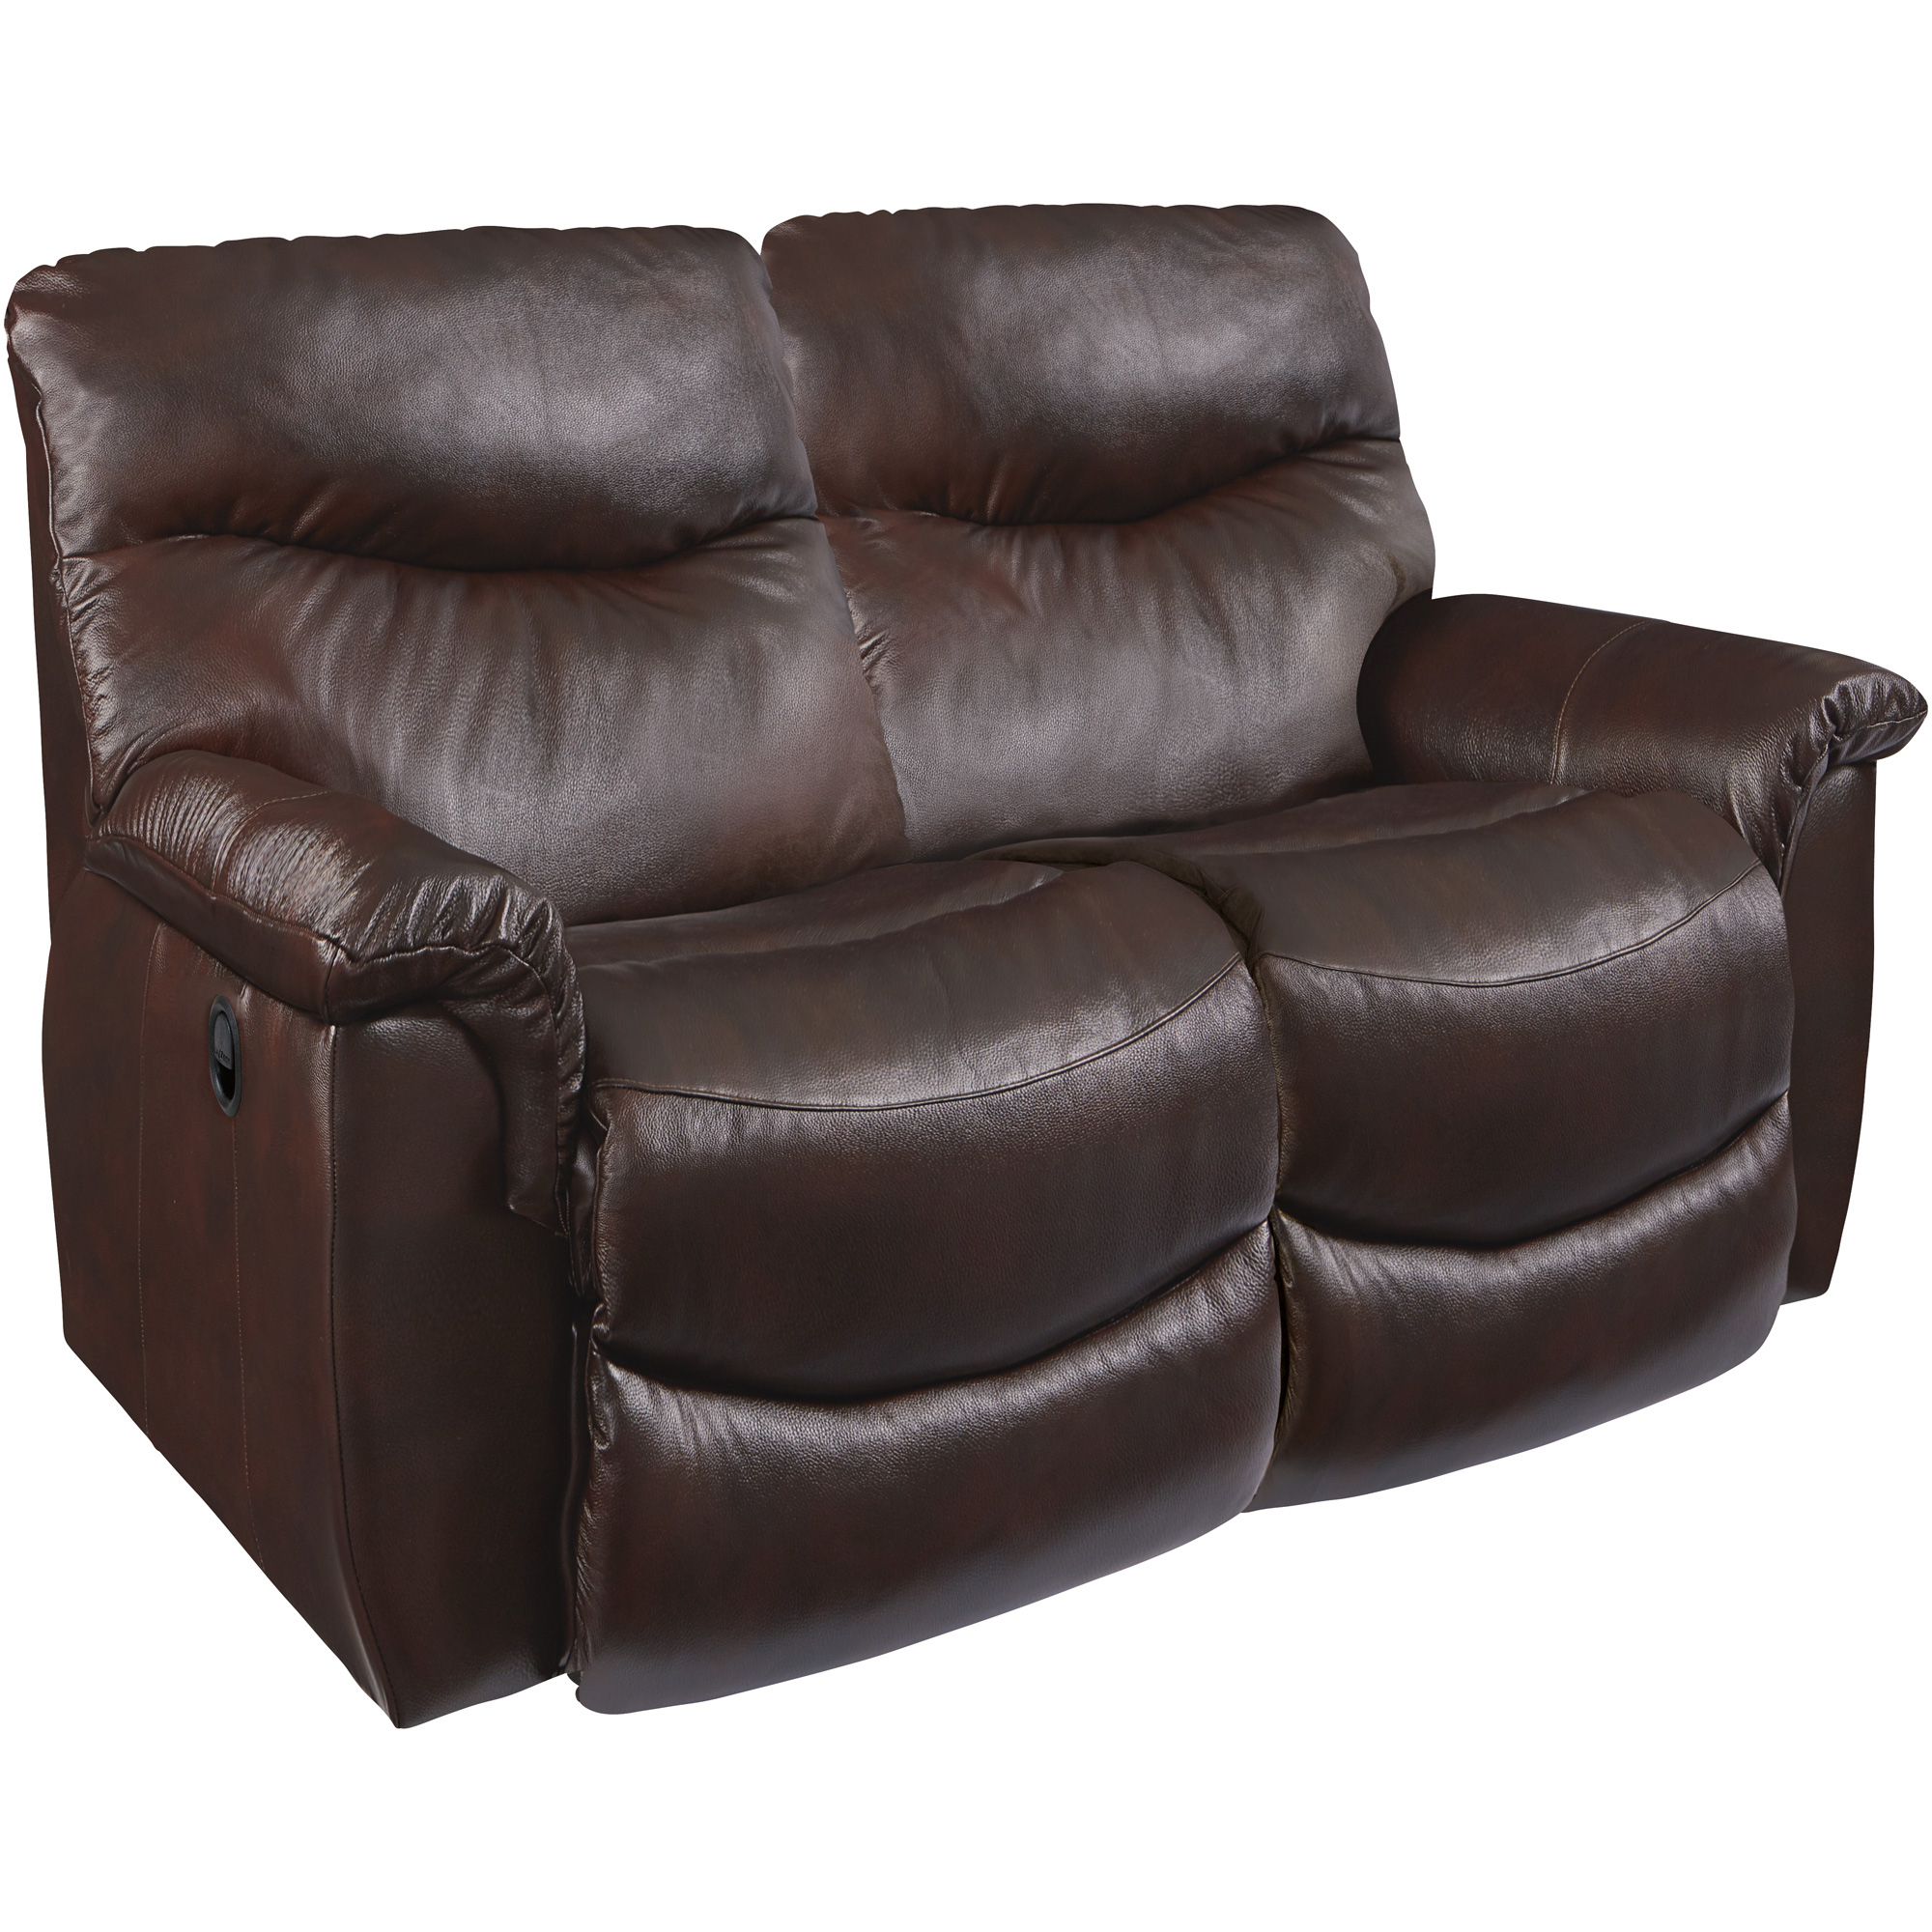 La-Z-Boy | James Leather Walnut Reclining Loveseat Sofa